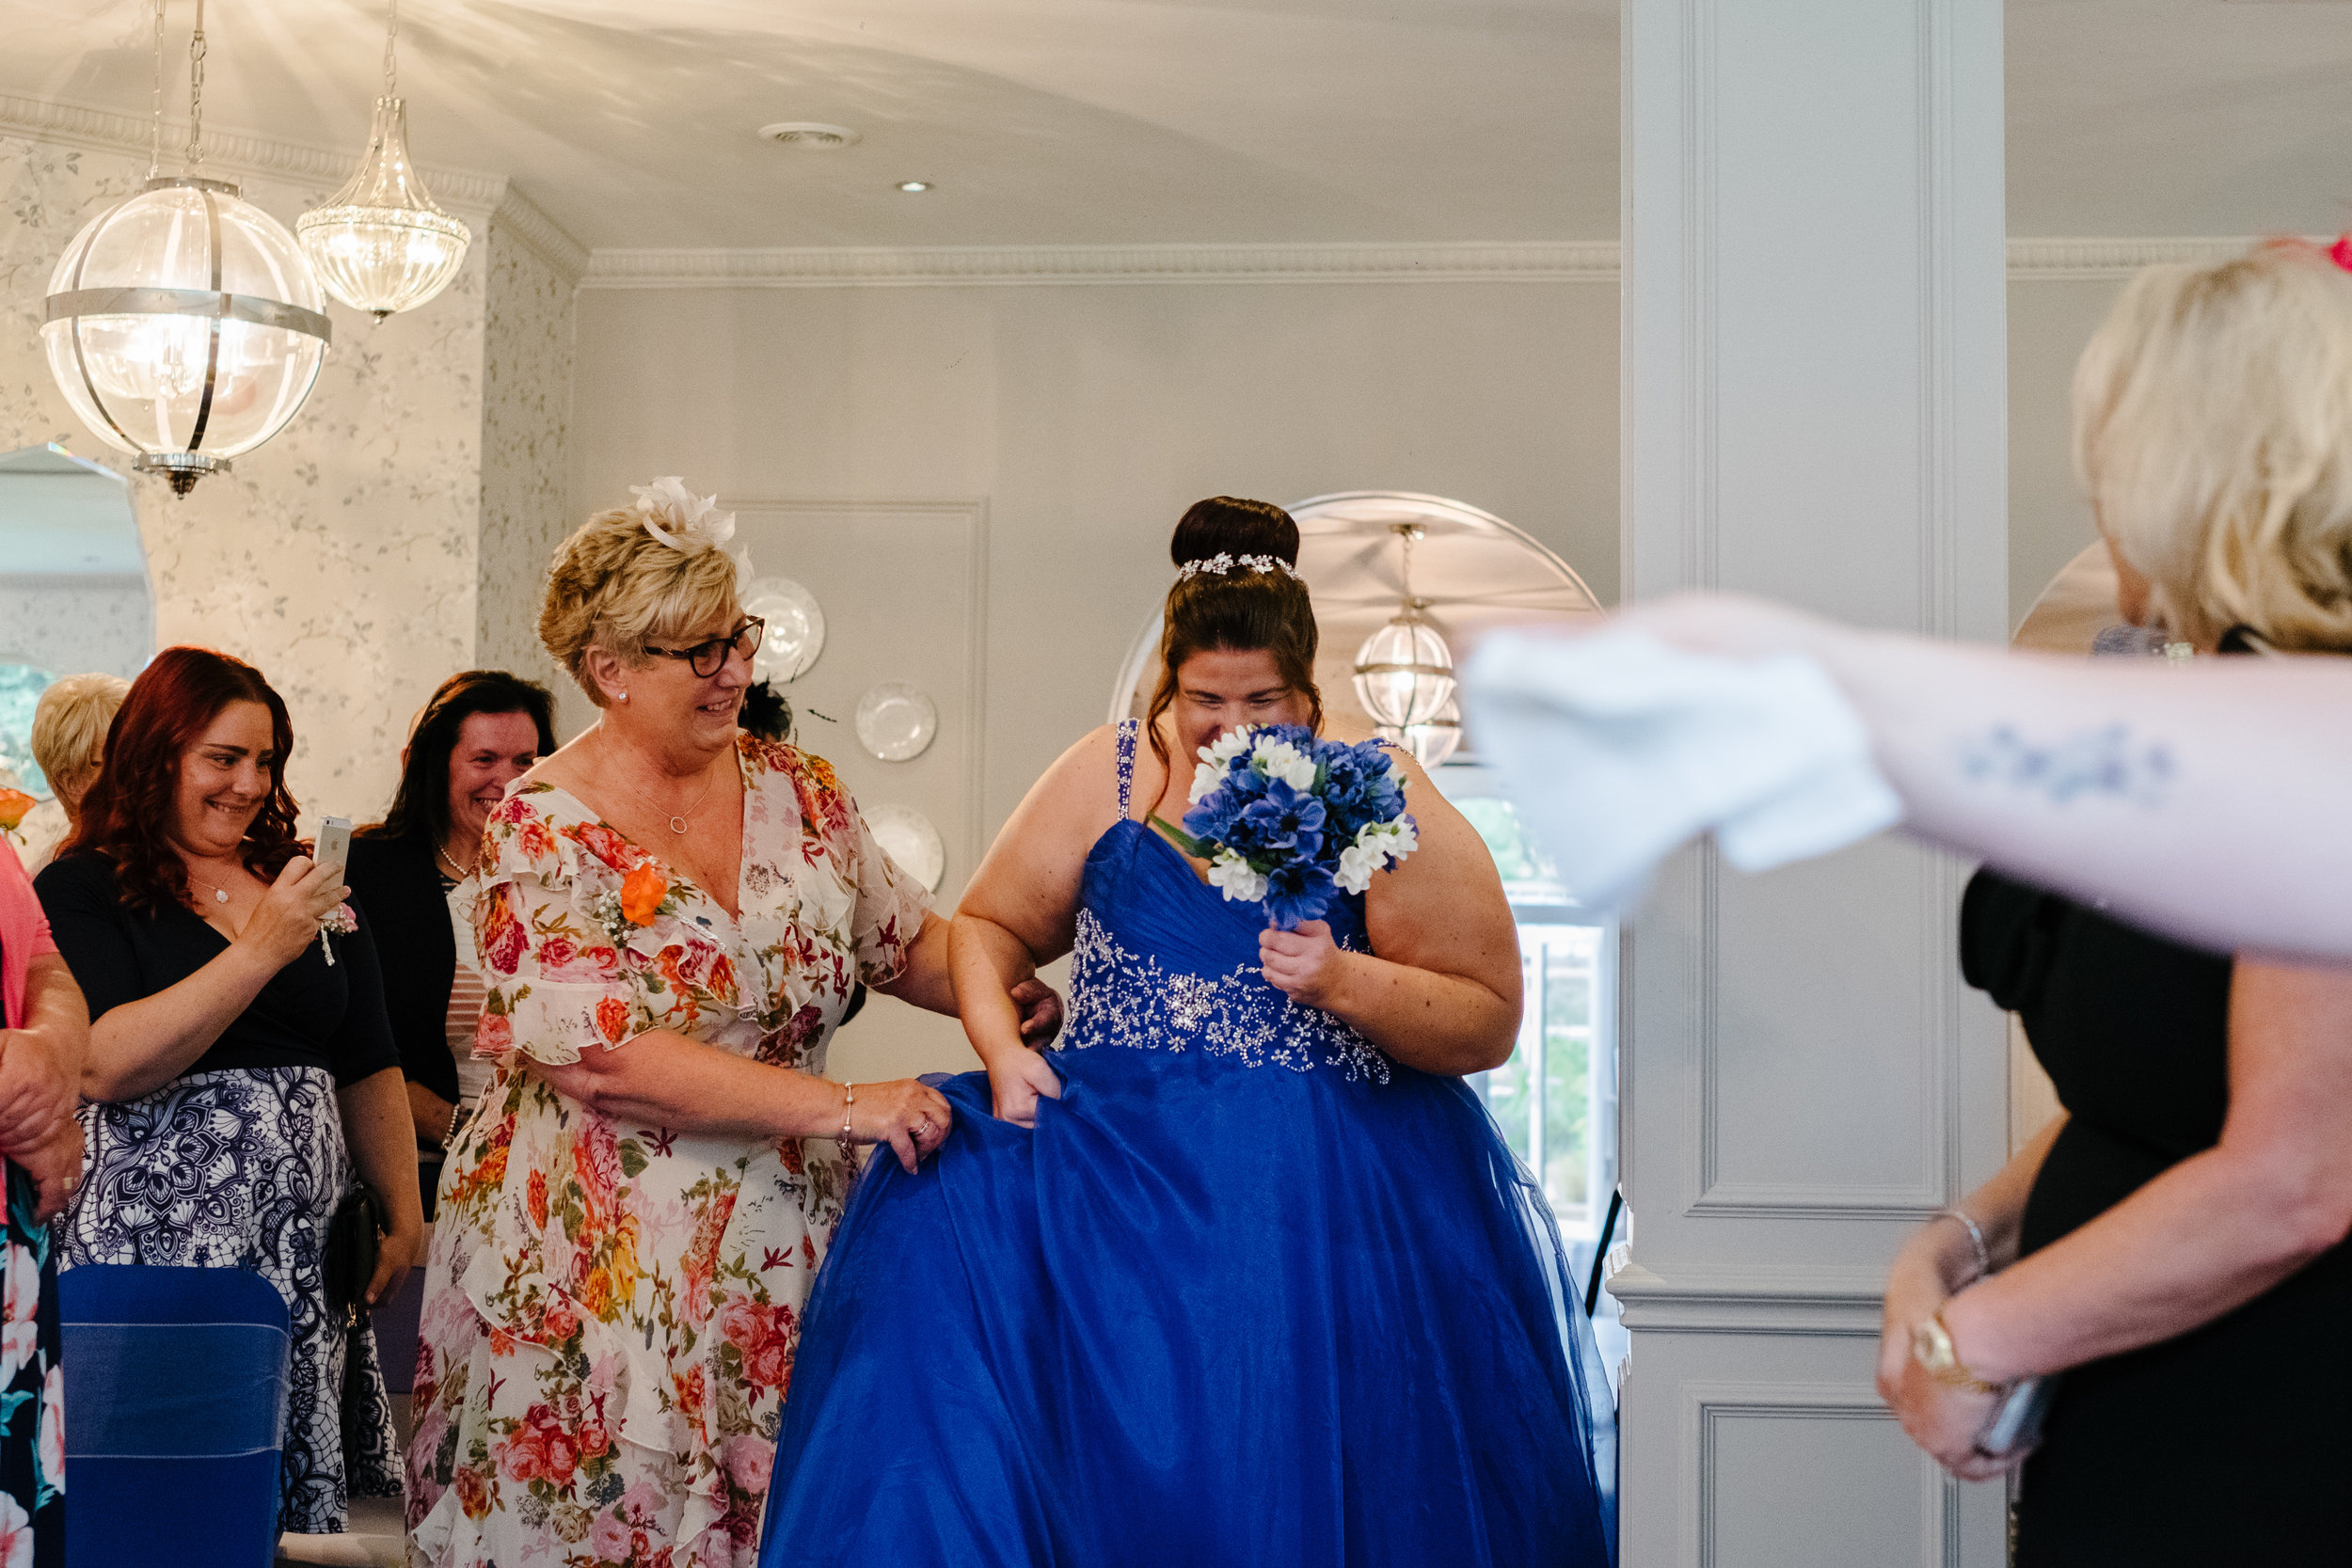 blue-wedding-dress-plus-size-bride.jpg